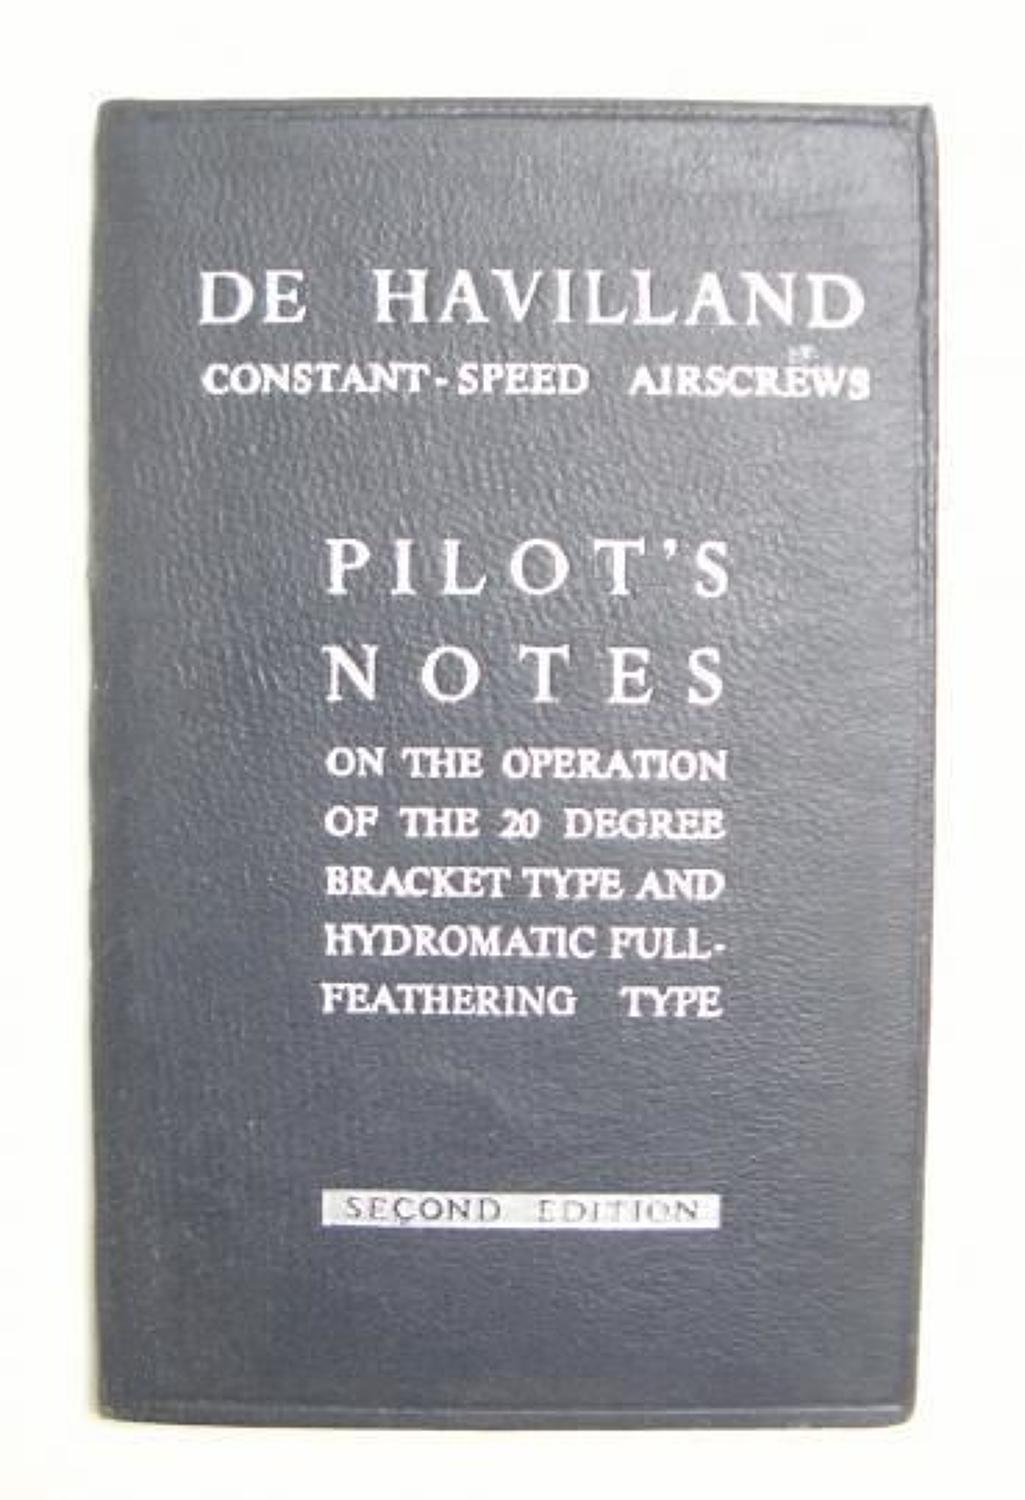 RAF De Havilland Airscrew Pilots Notes.